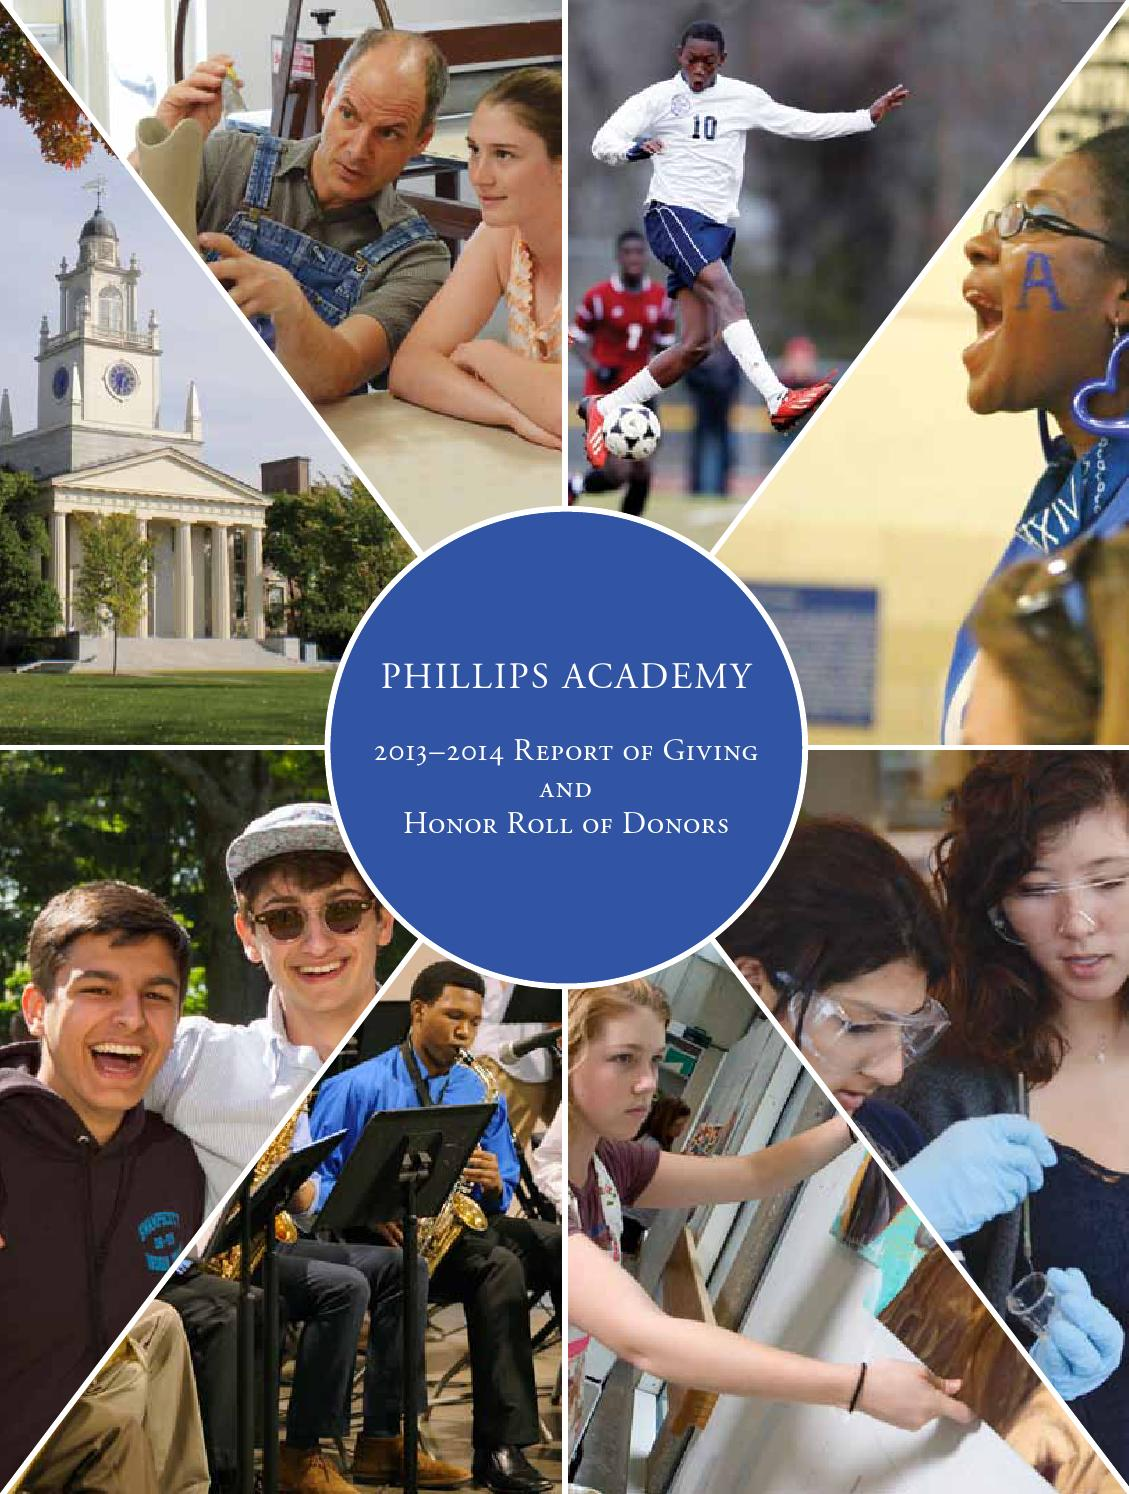 Report Of Giving 2014 By Phillips Academy Issuu